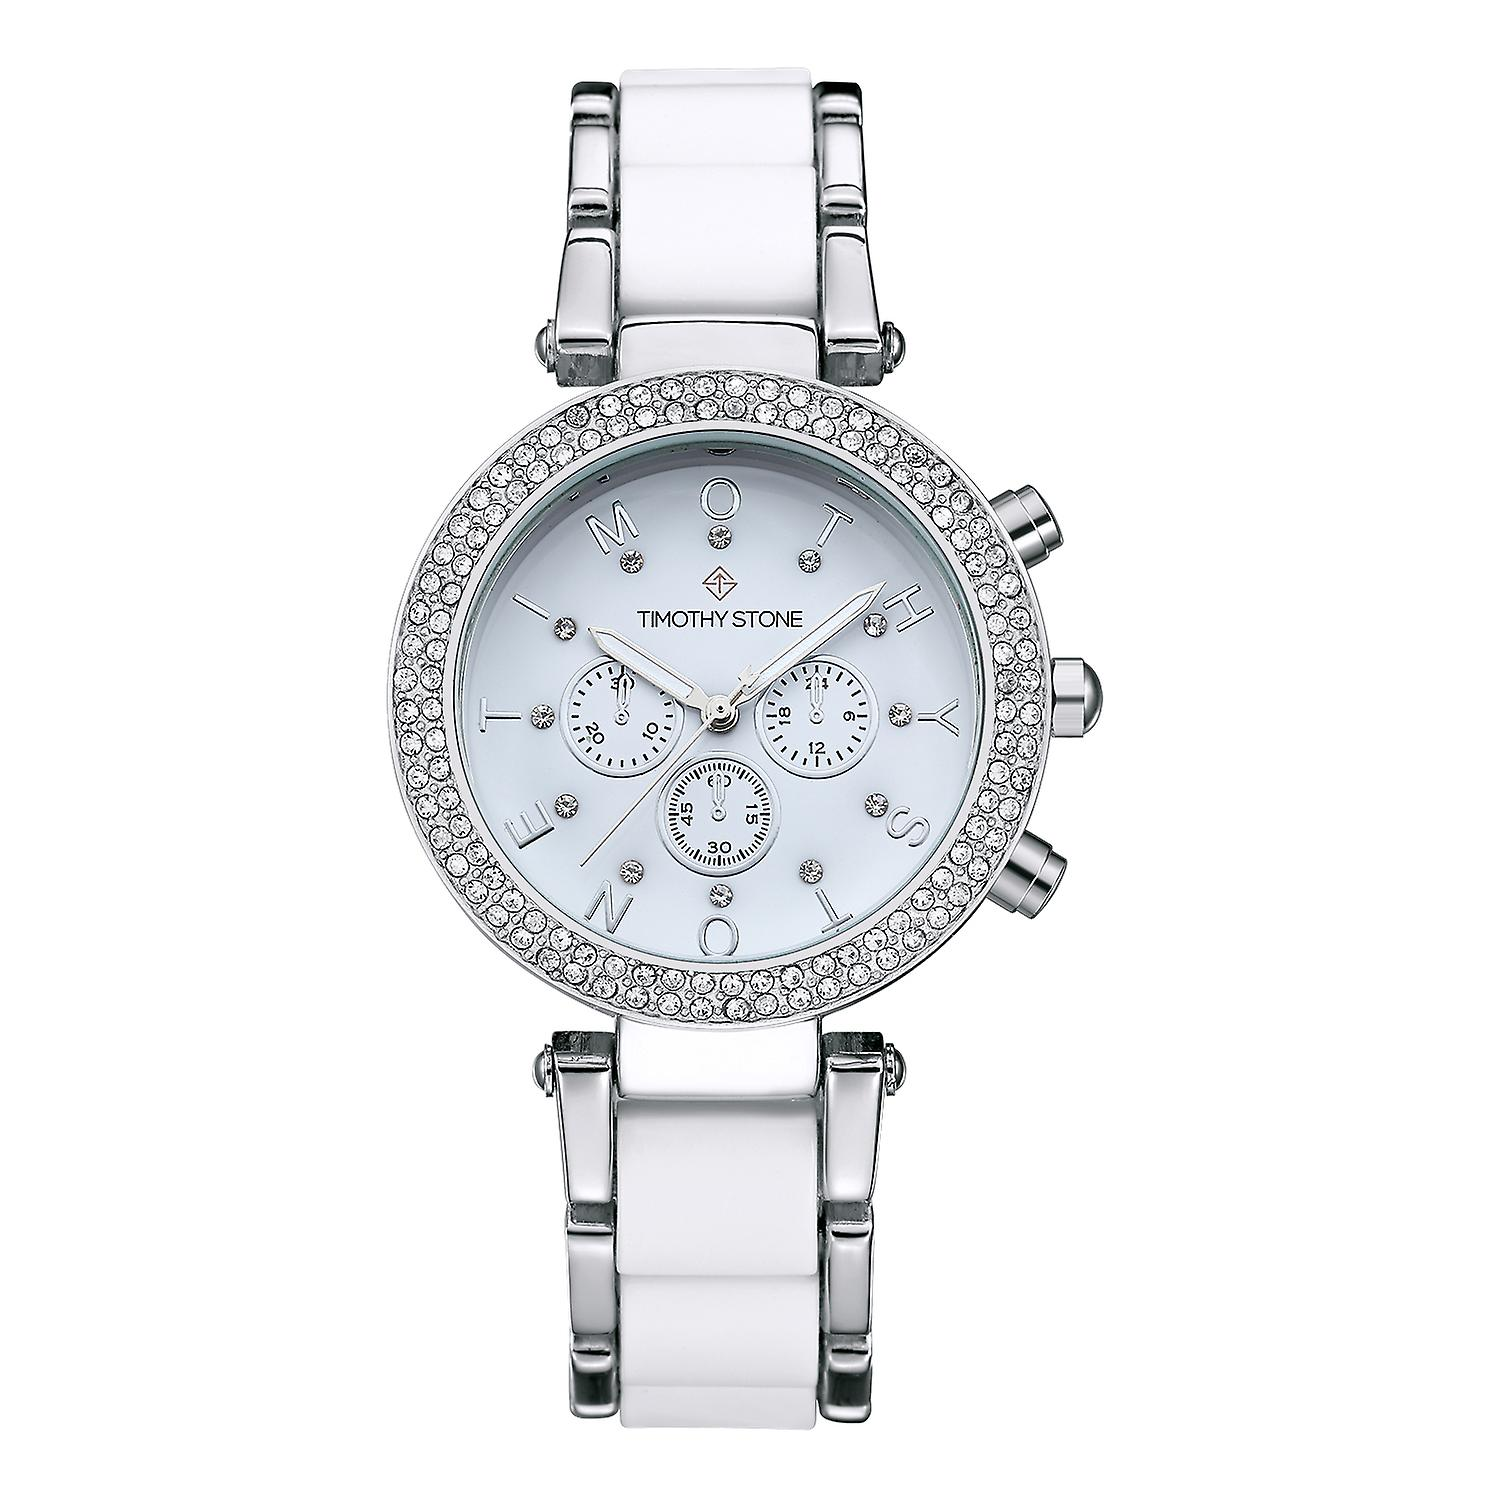 Timothy Stone Women's D�SIRE-BICOLOR Silver-Tone and White Watch